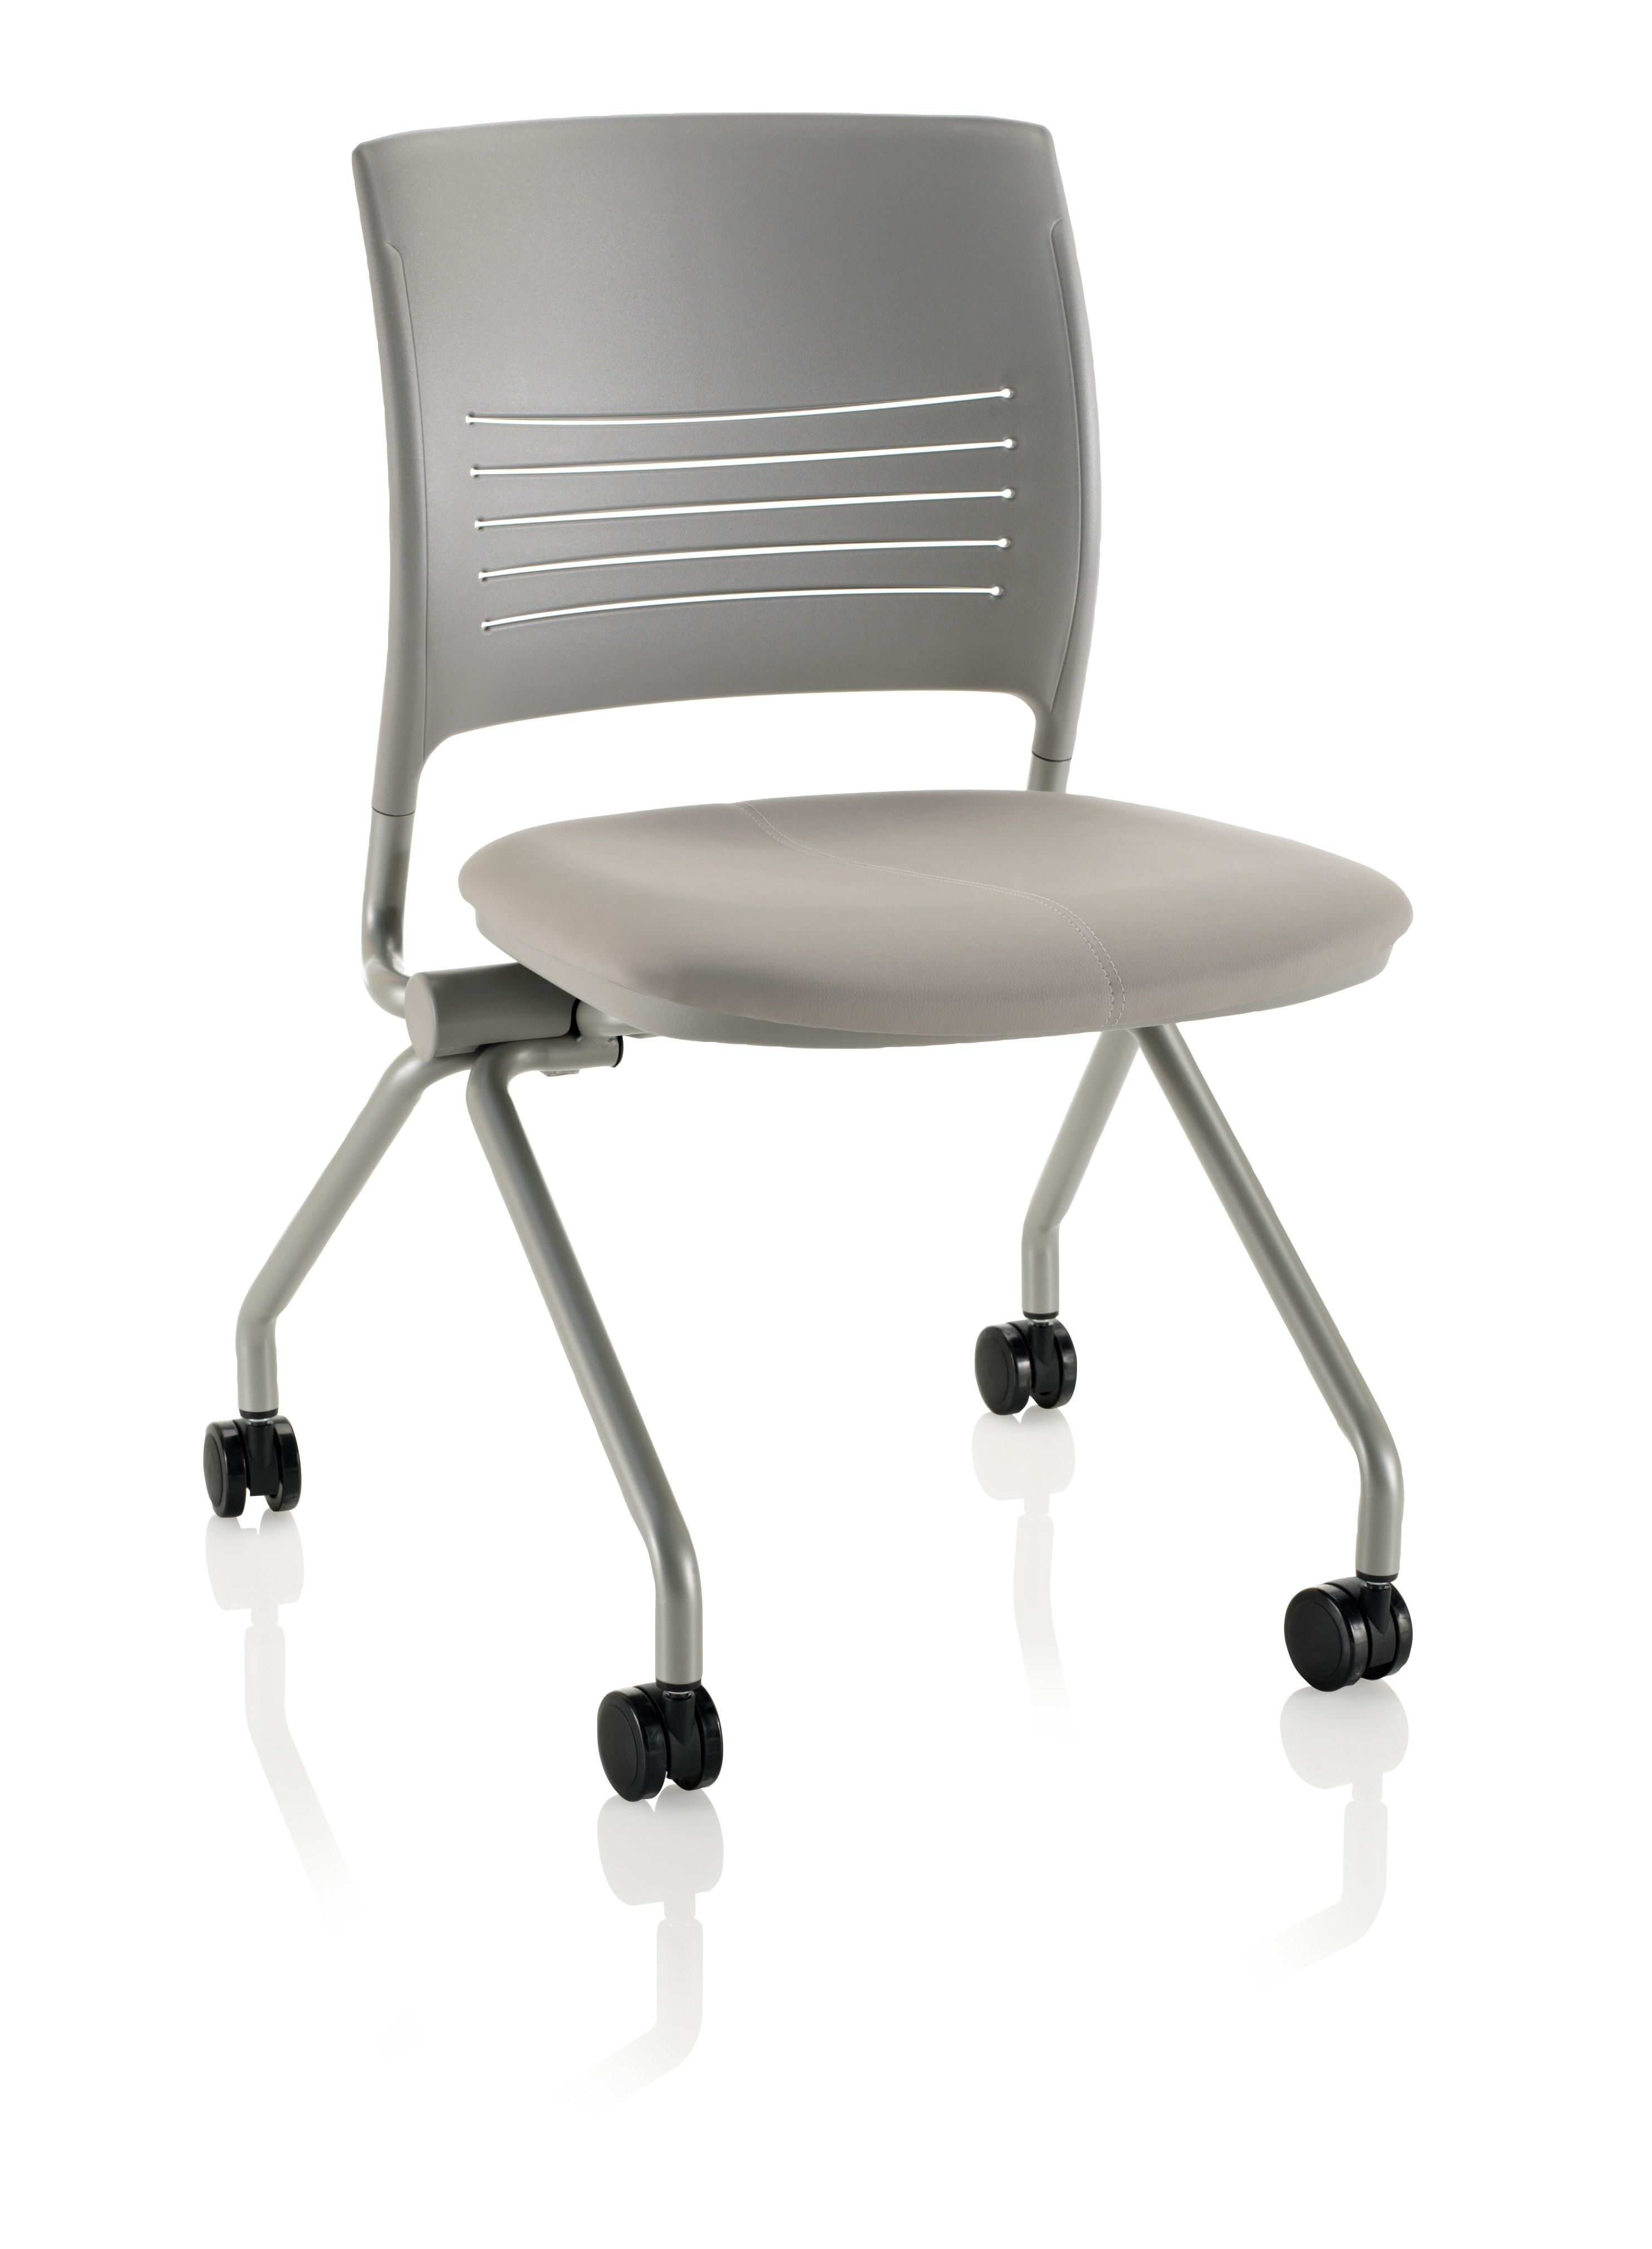 Strive Nesting With Upholstered Seat